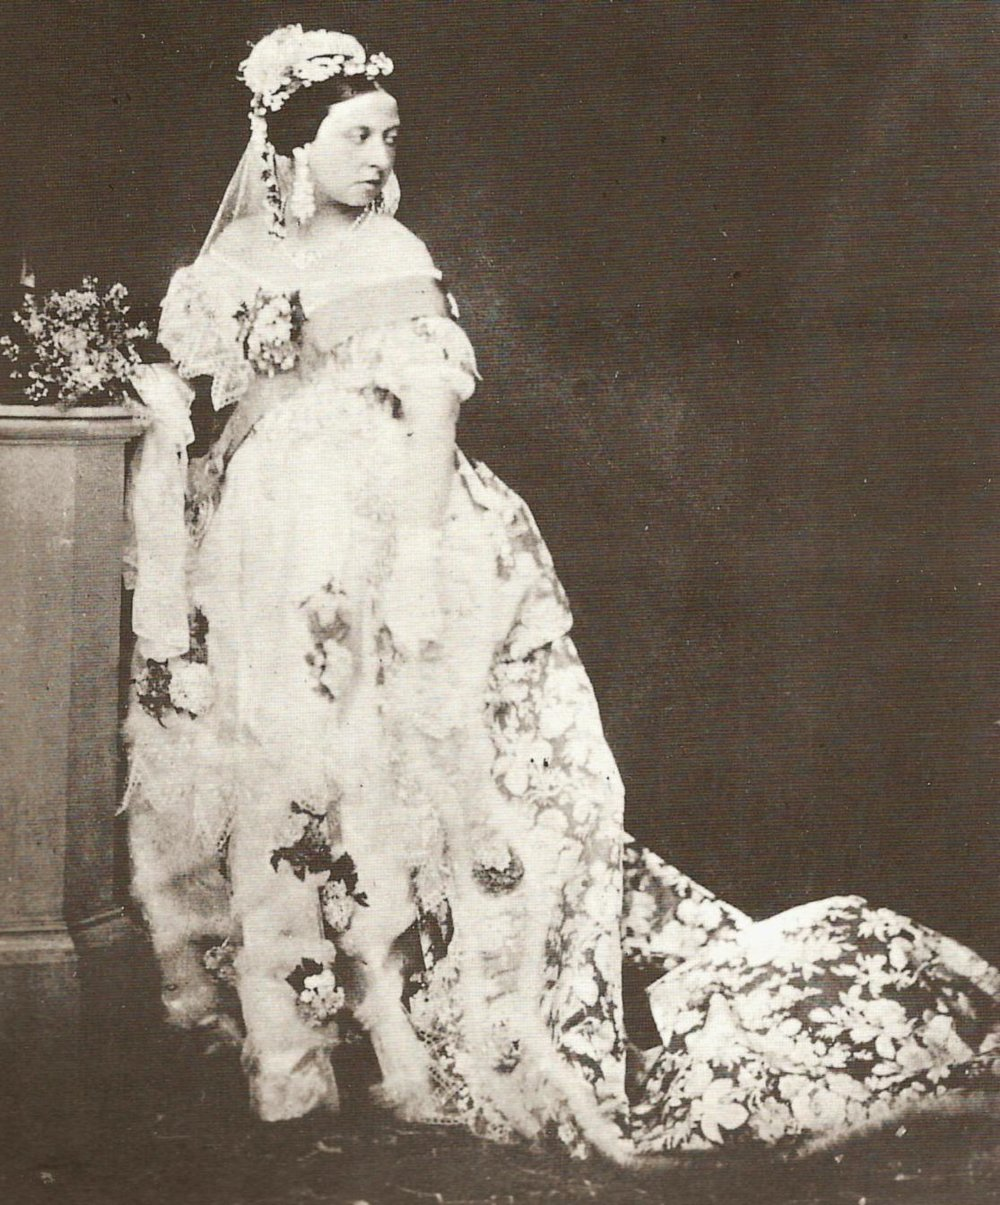 The queen who popularized the white wedding dress: Queen Victoria when she married Prince Albert 1840